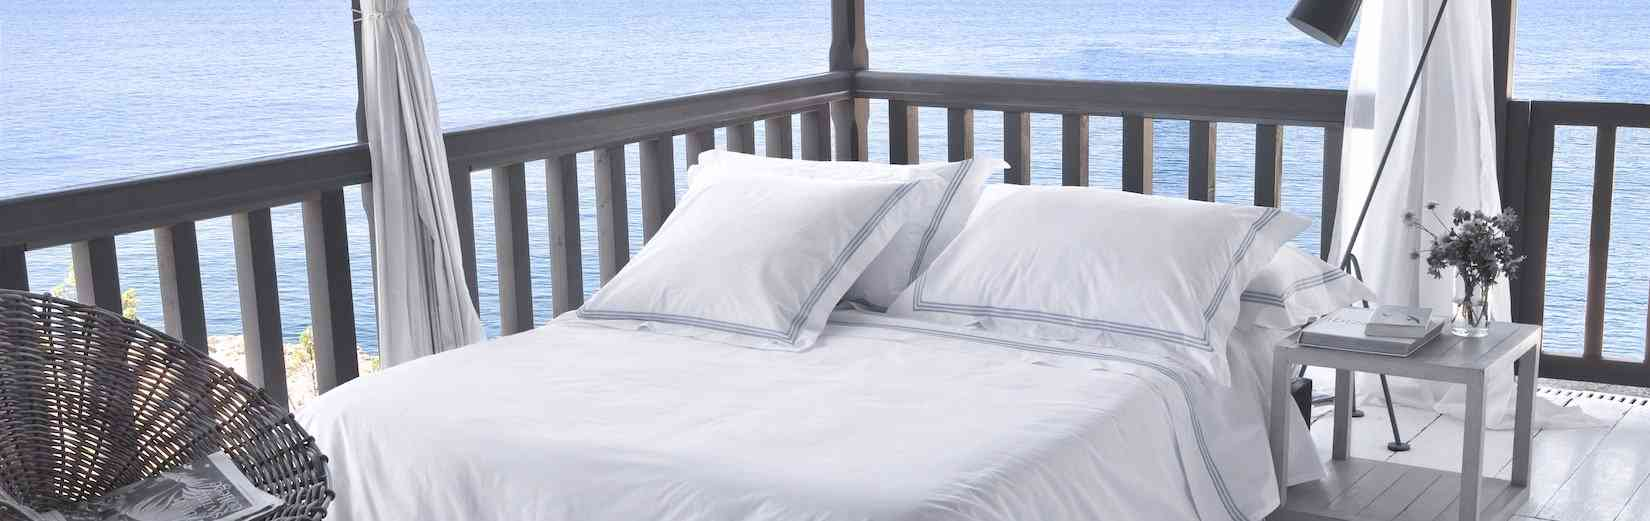 Be the first to review percale t 180 classic queen size flat sheets - Queen